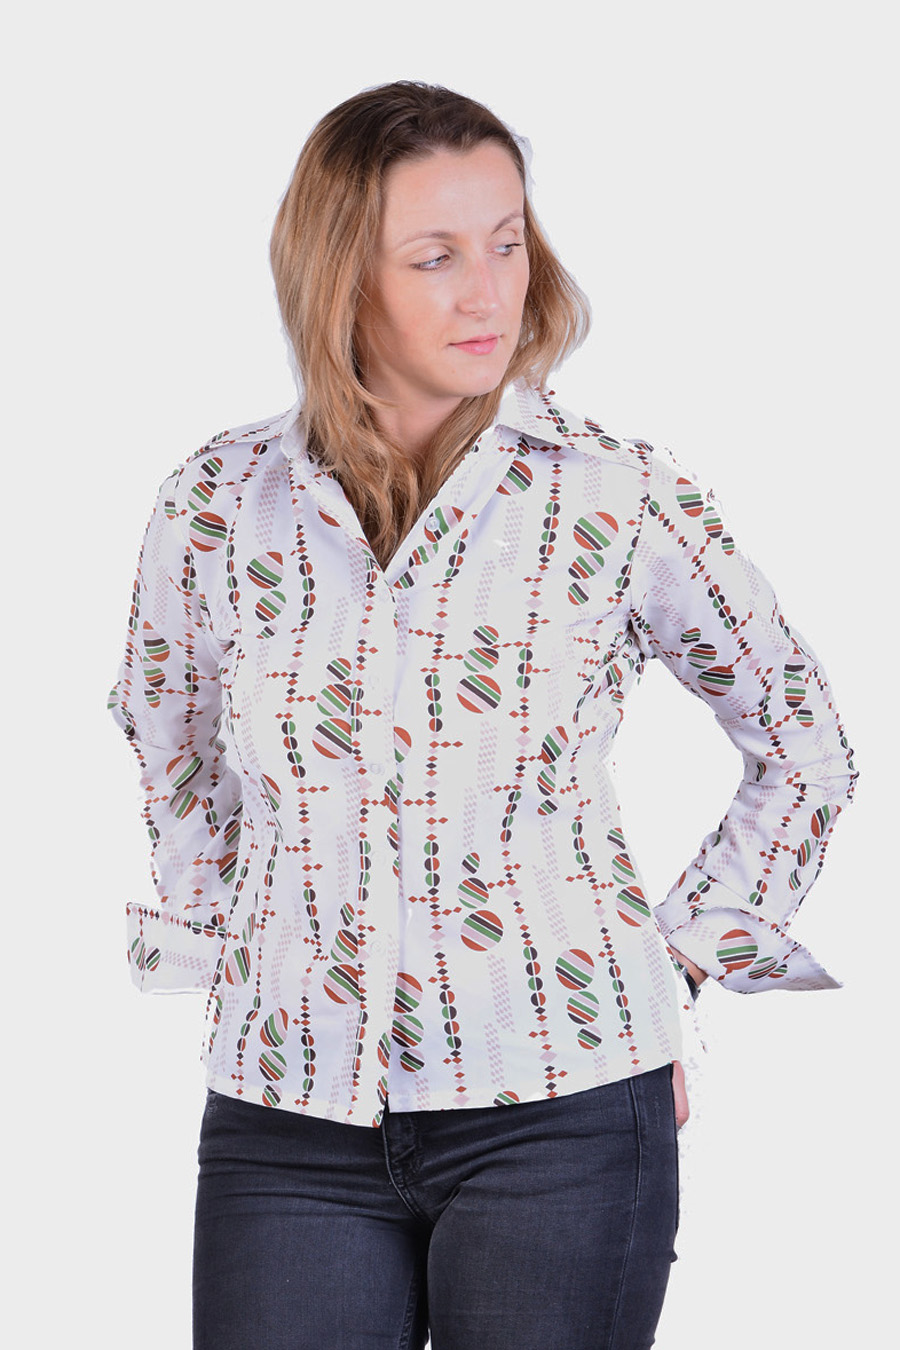 Vintage retro women's shirt